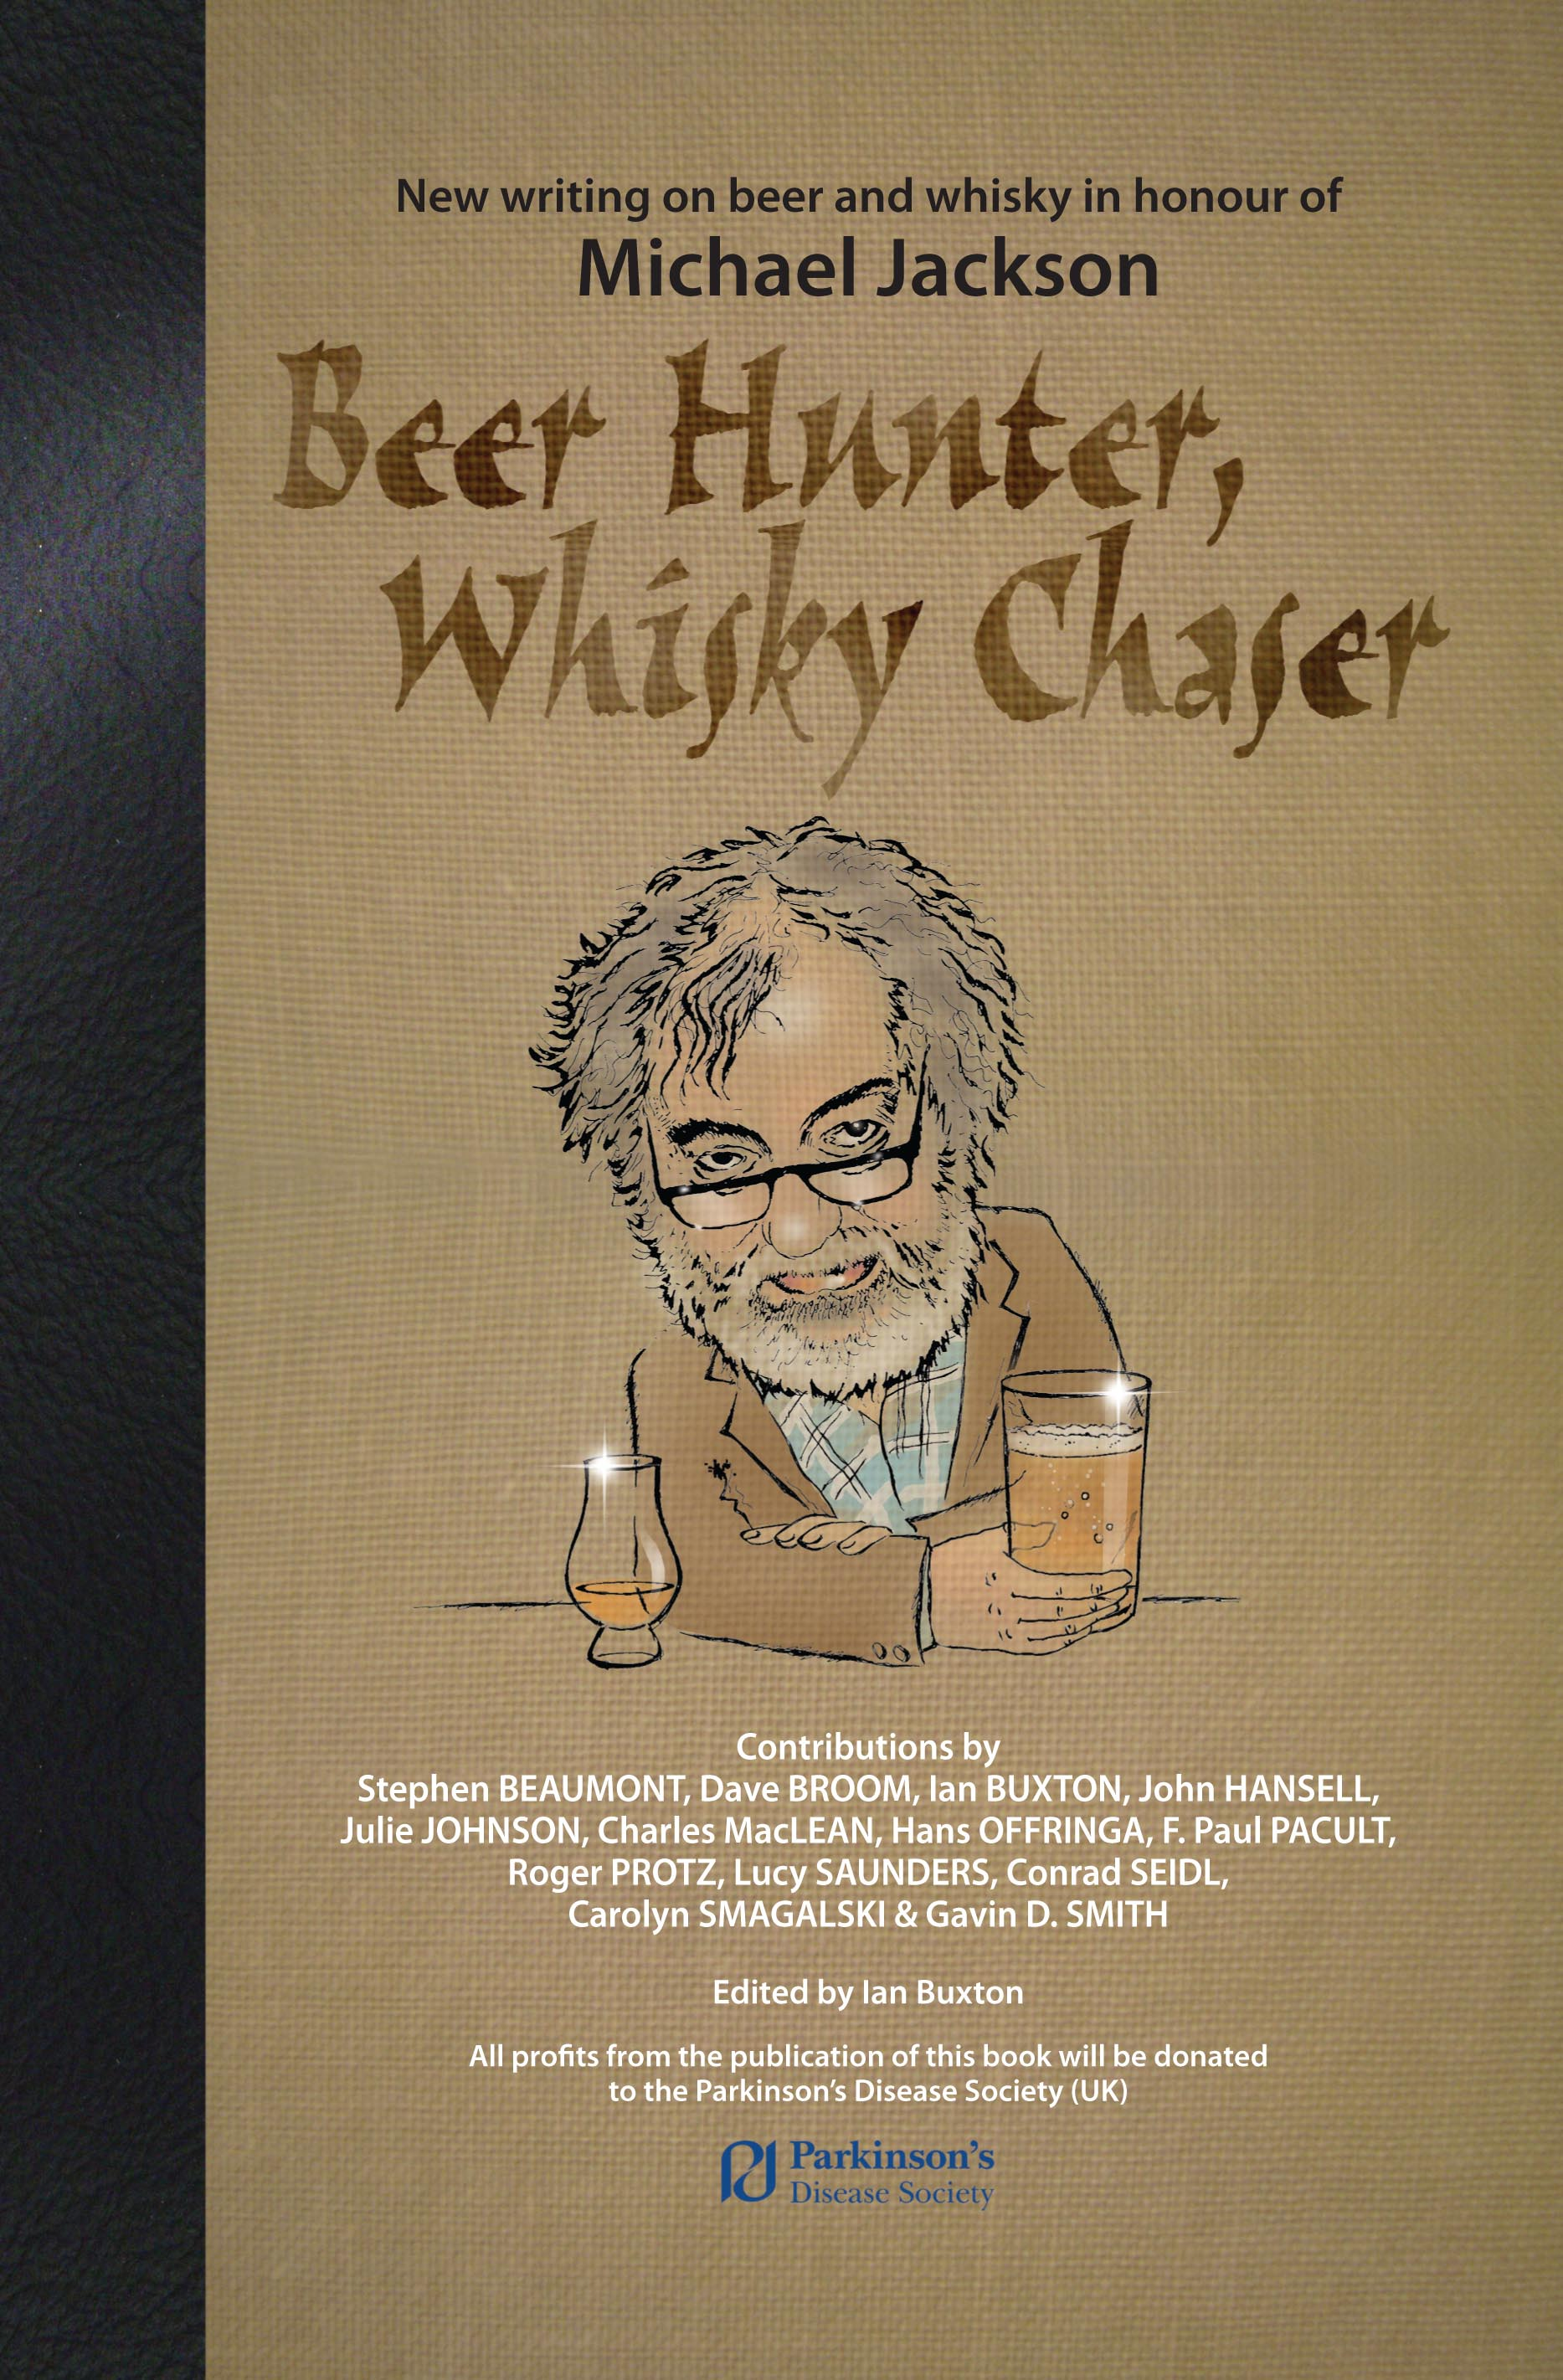 beer-hunter-whisky-chaser1